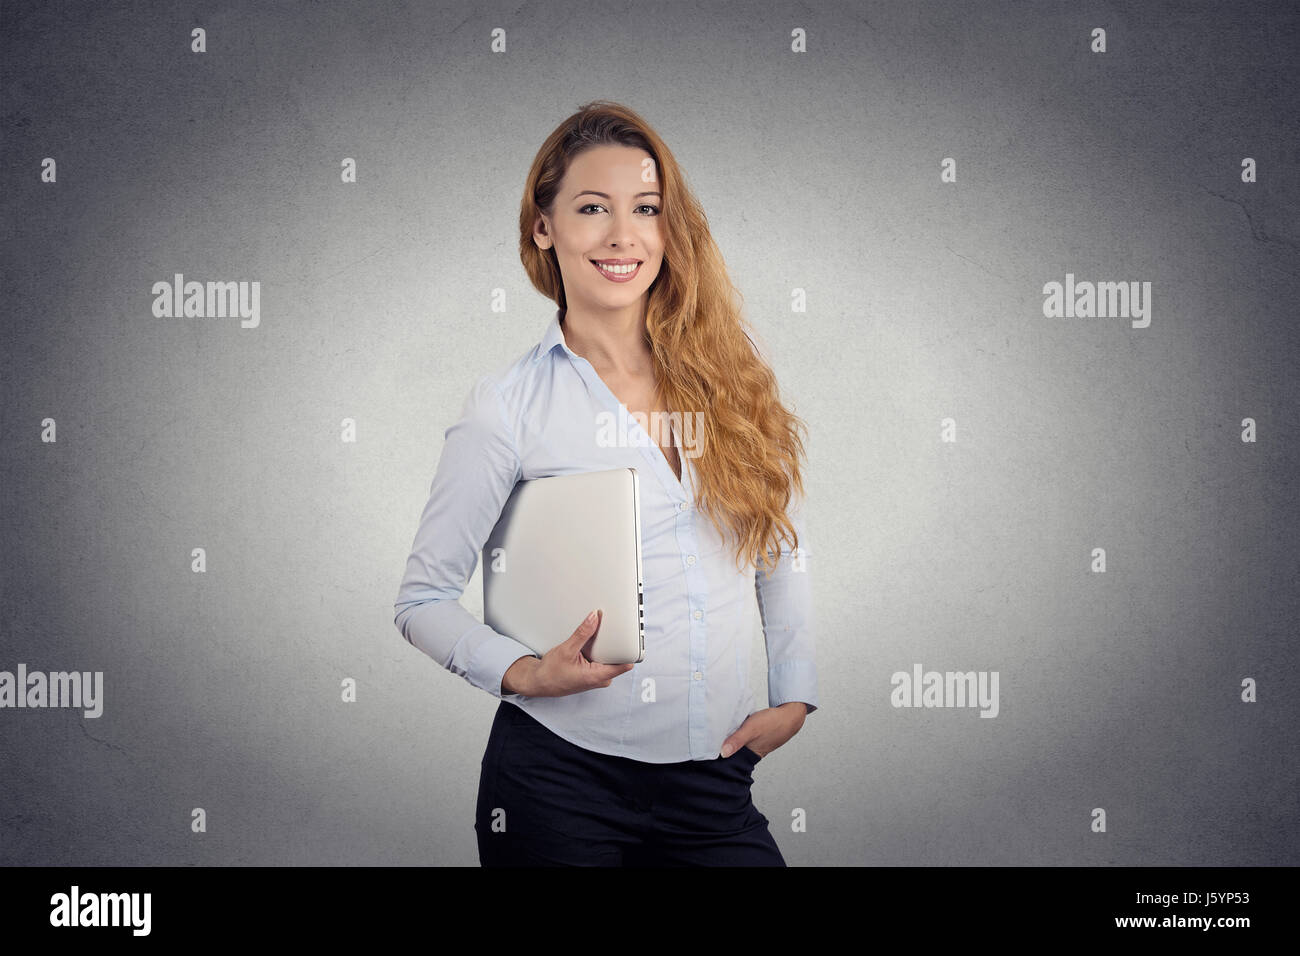 Portrait young beautiful happy woman holding laptop smiling standing bureau isolé sur fond de mur gris. Expression Photo Stock